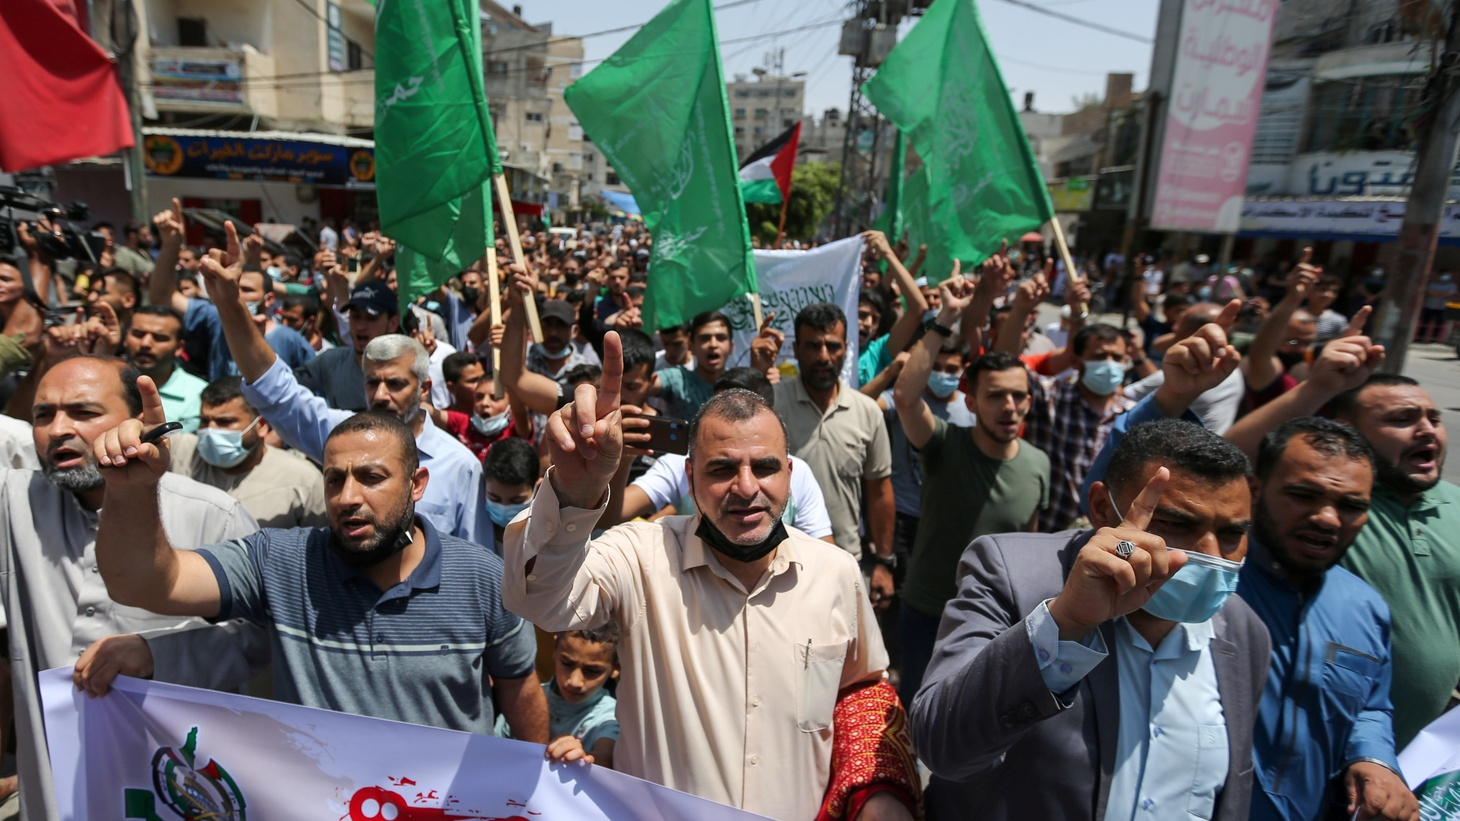 Palestinian Hamas supporters take part in a rally to celebrate following Israel-Hamas truce in the southern Gaza Strip, May 21, 2021.